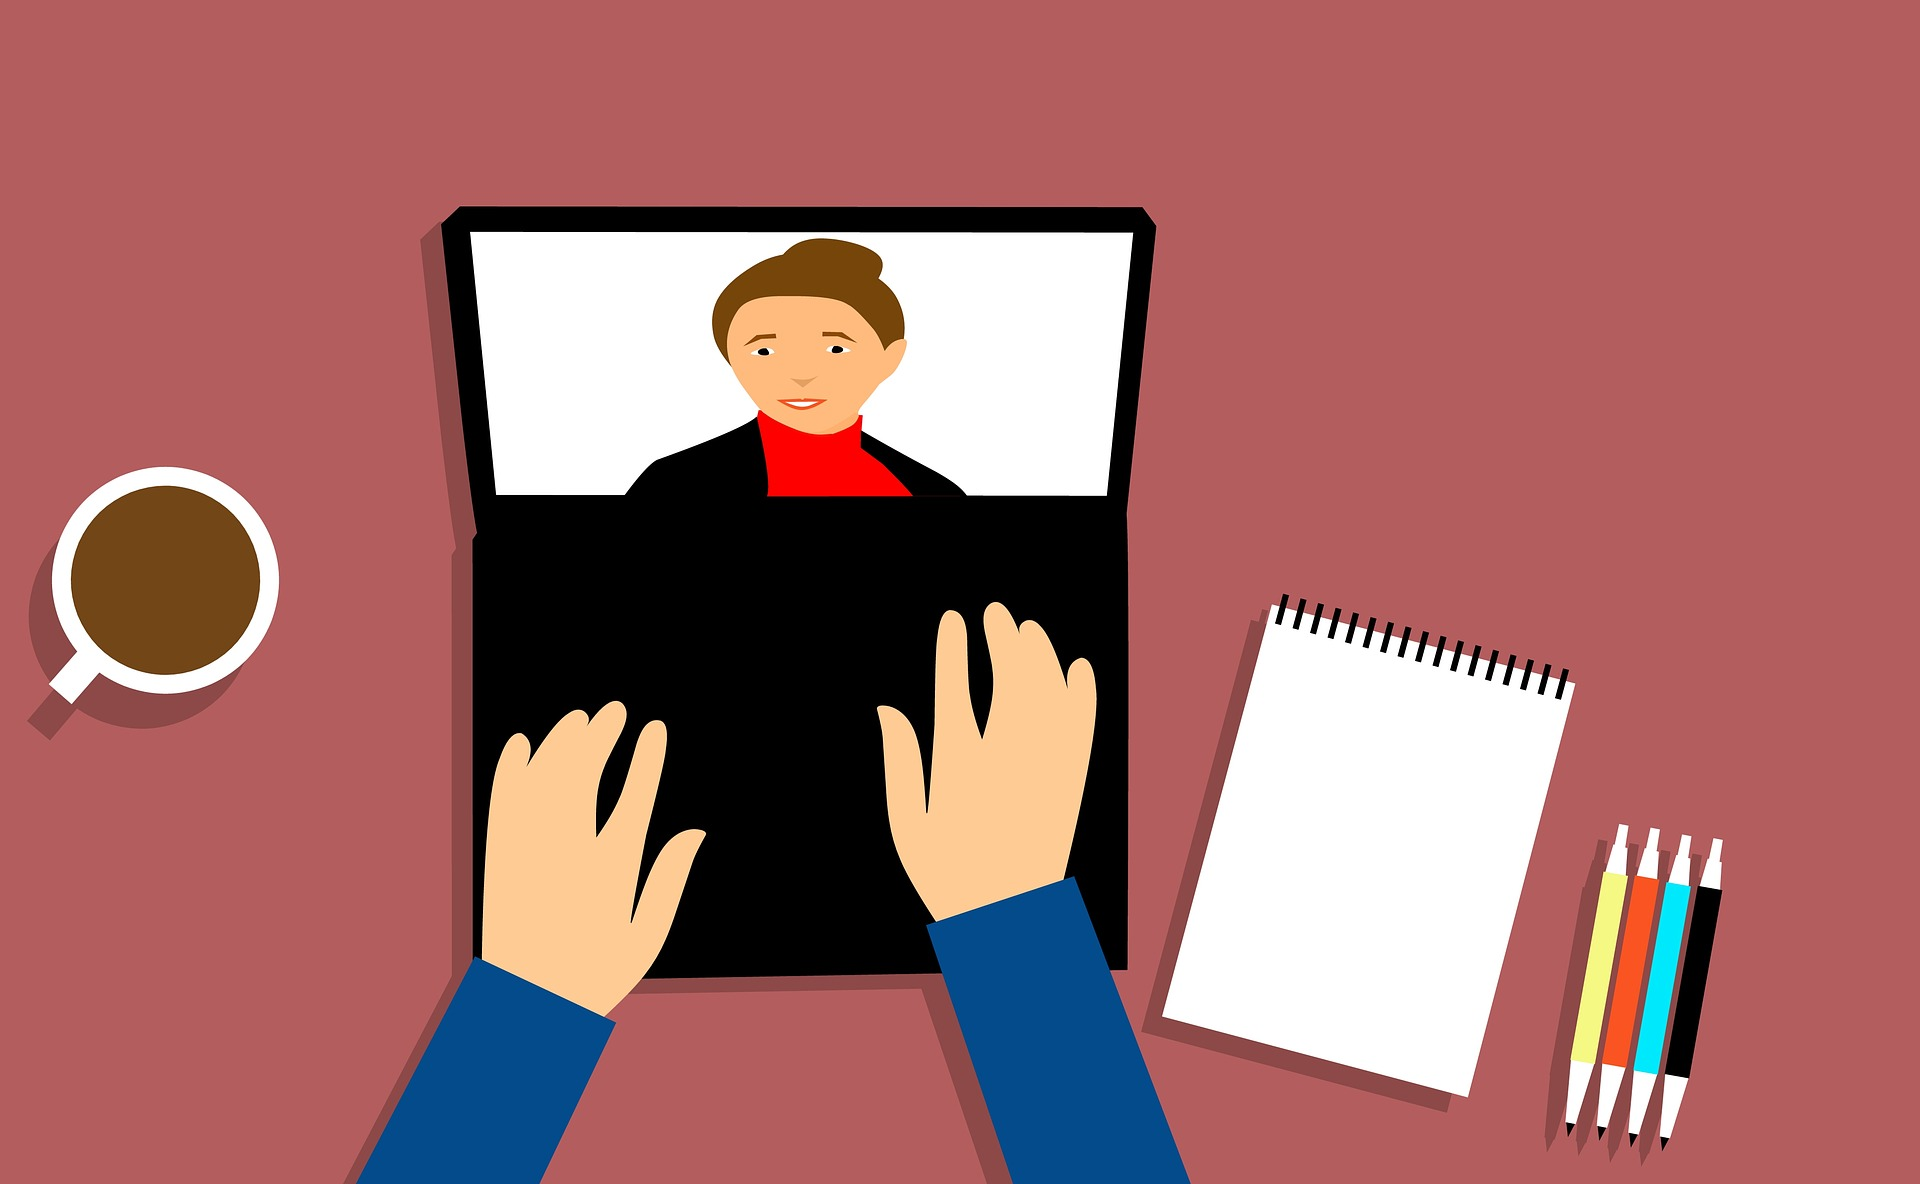 online simulations are a new way to assess soft skills before meeting a candidate in person.